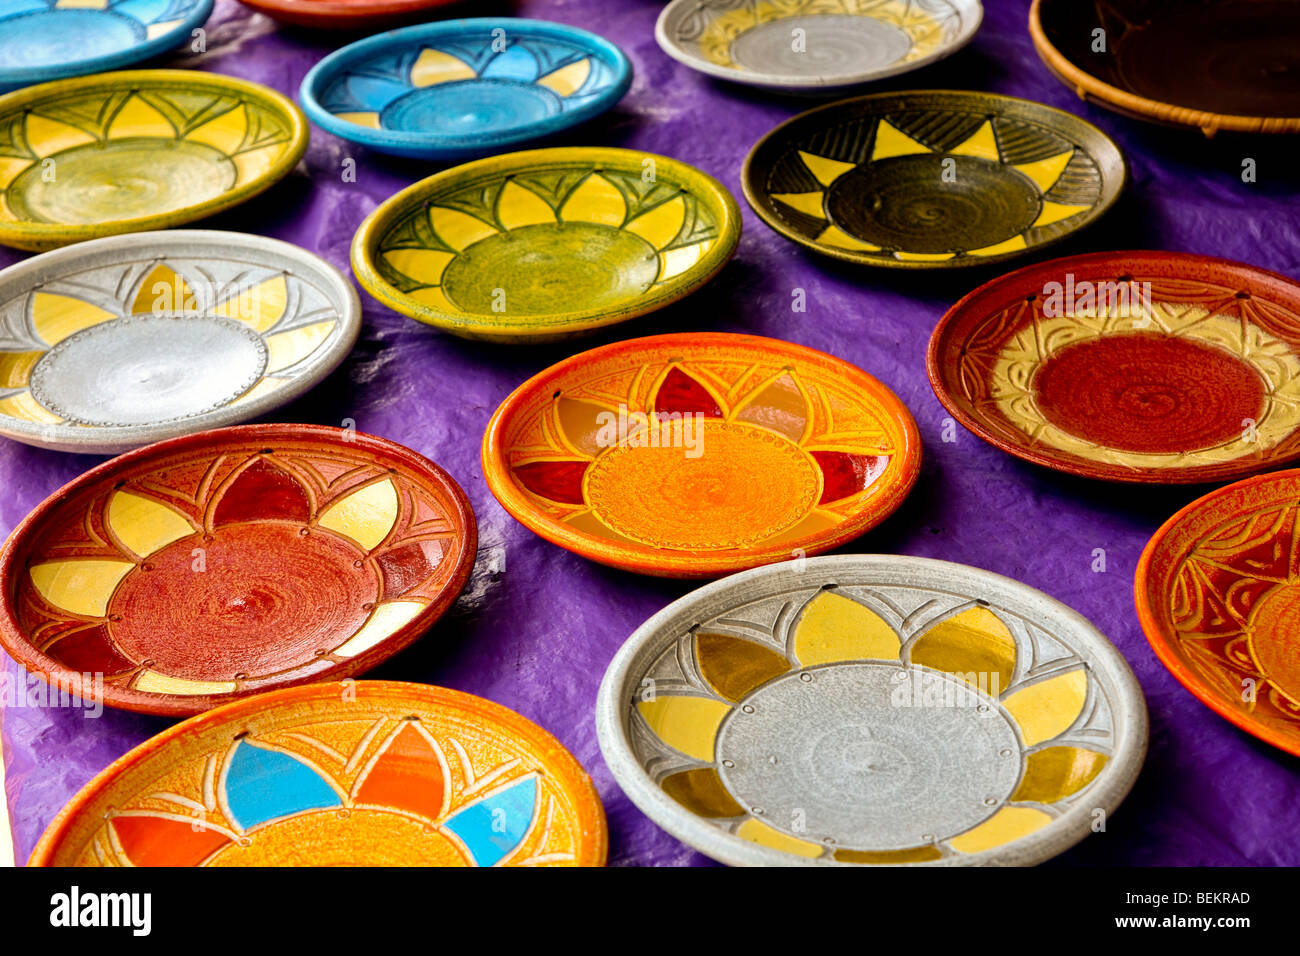 Colorful African Ceramic Plates at outdoor market in Accra Ghana & Colorful African Ceramic Plates at outdoor market in Accra Ghana ...